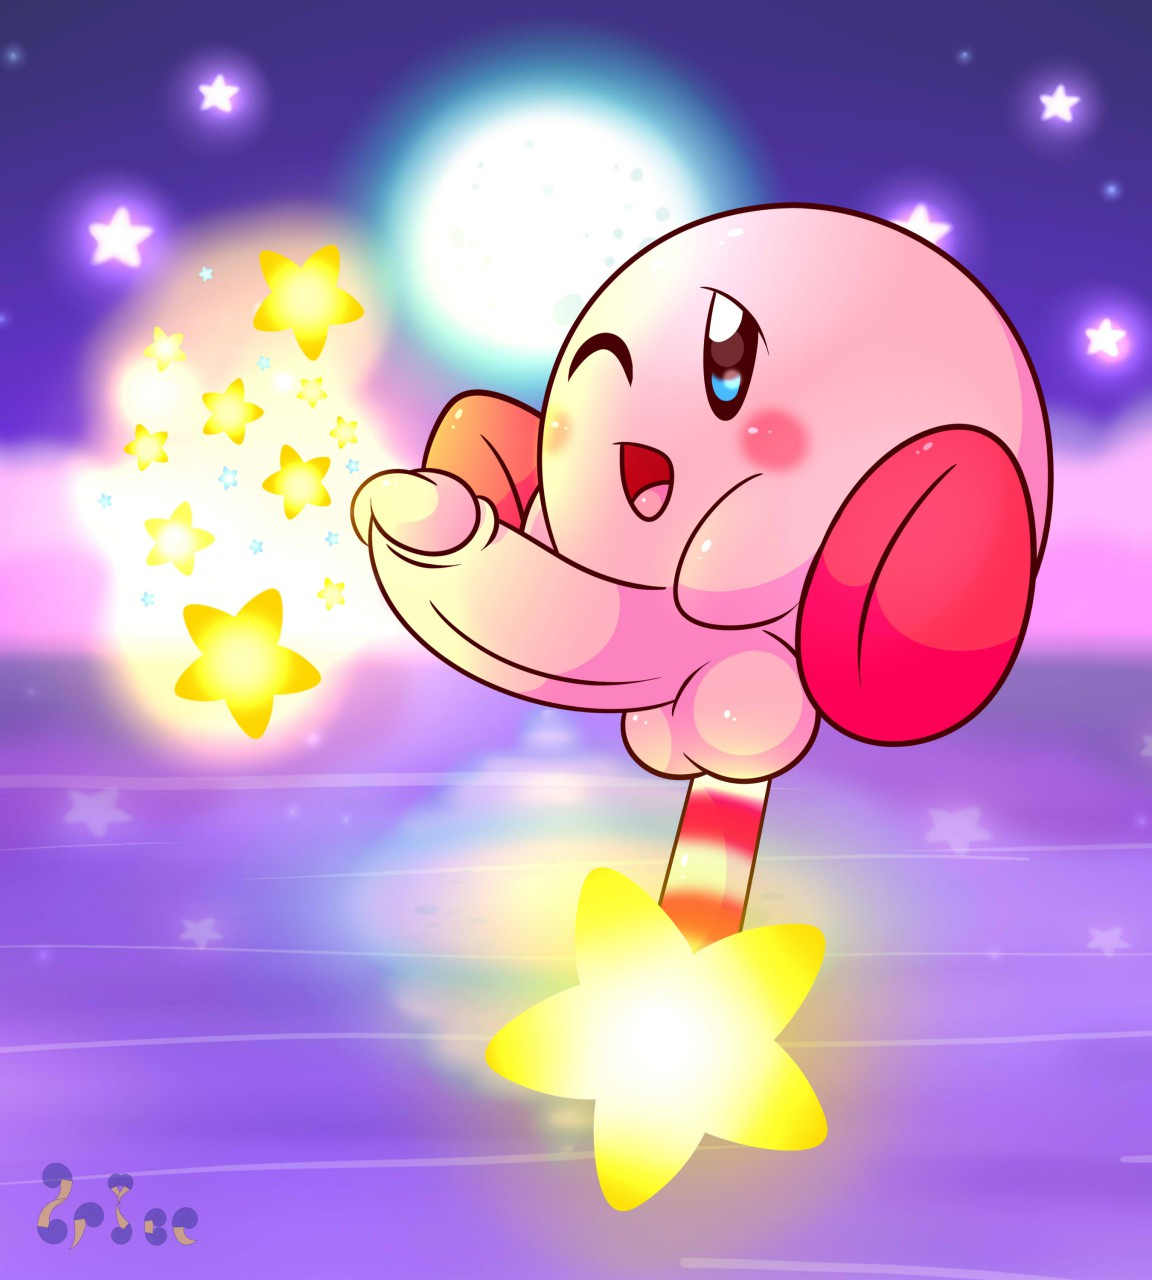 allies star kirby Penguins of madagascar uncle nigel